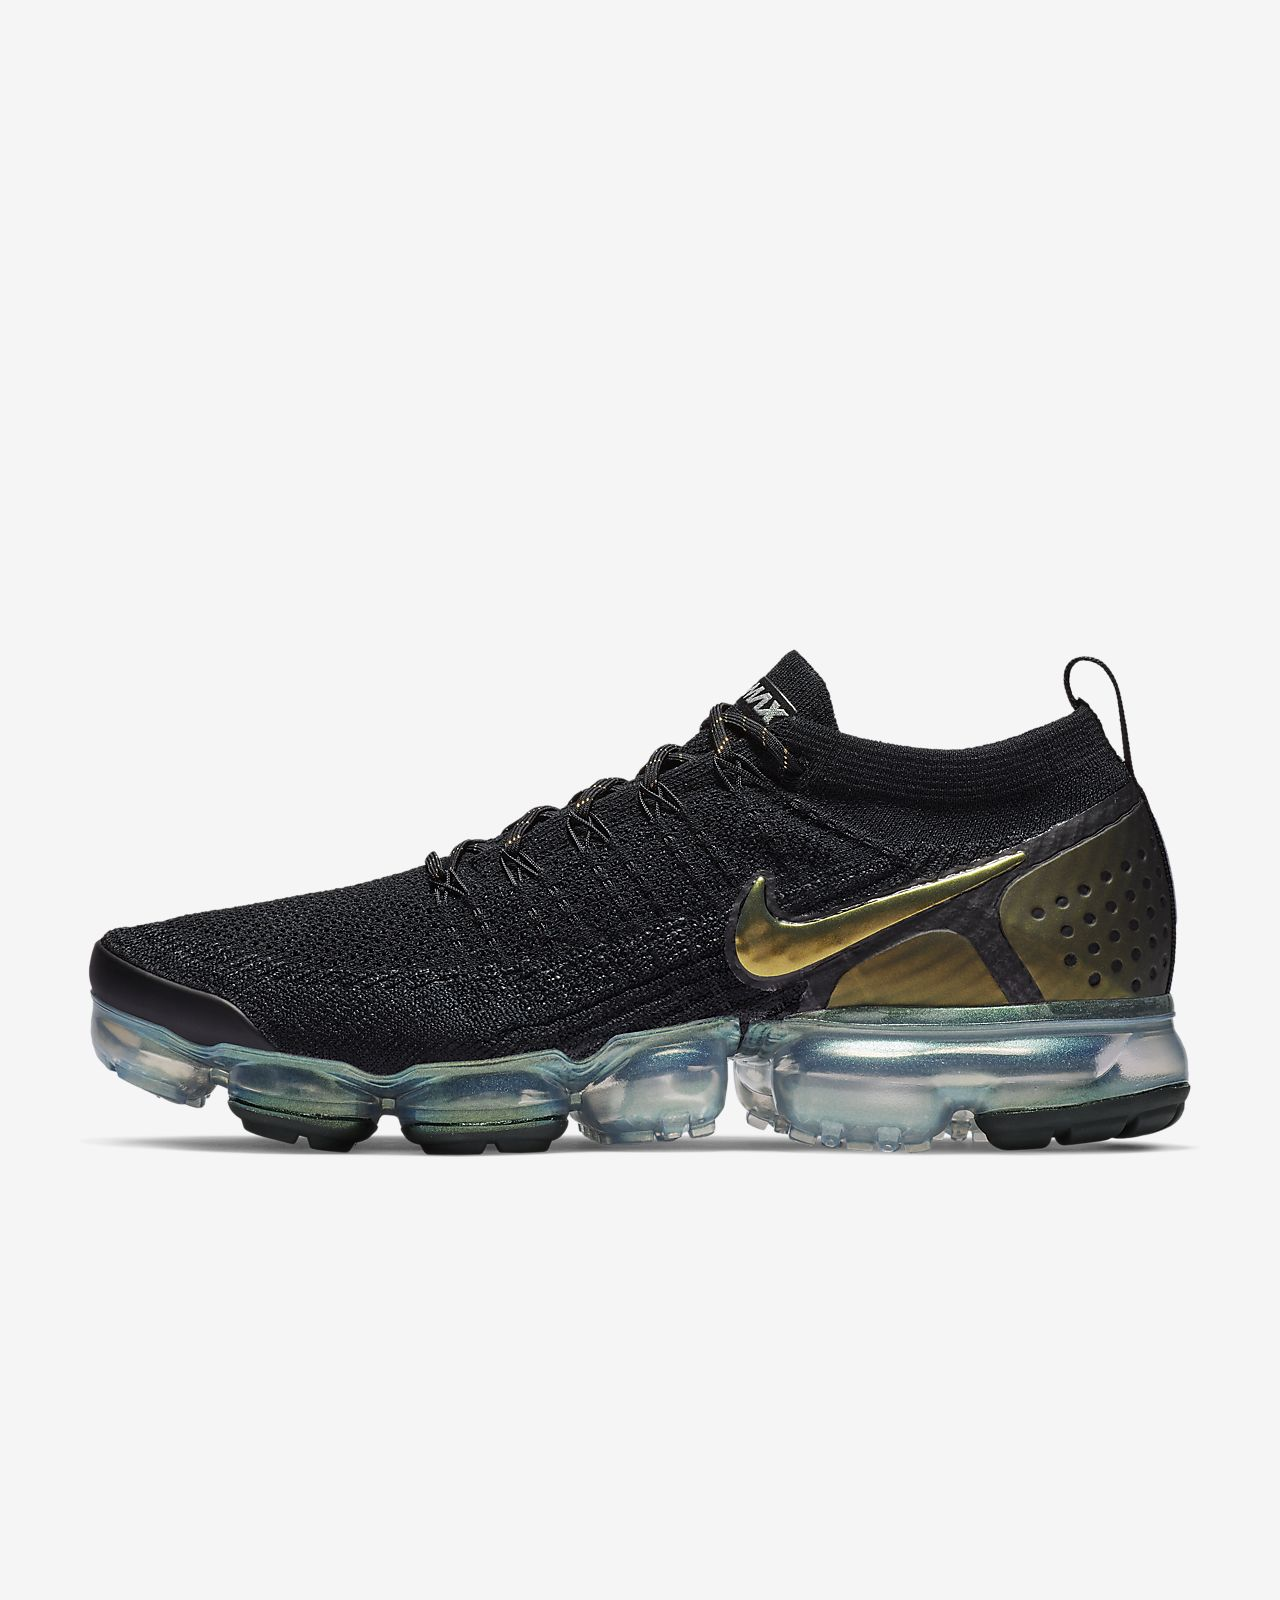 reputable site 9c351 e1e33 Shoe. Nike Air VaporMax Flyknit 2